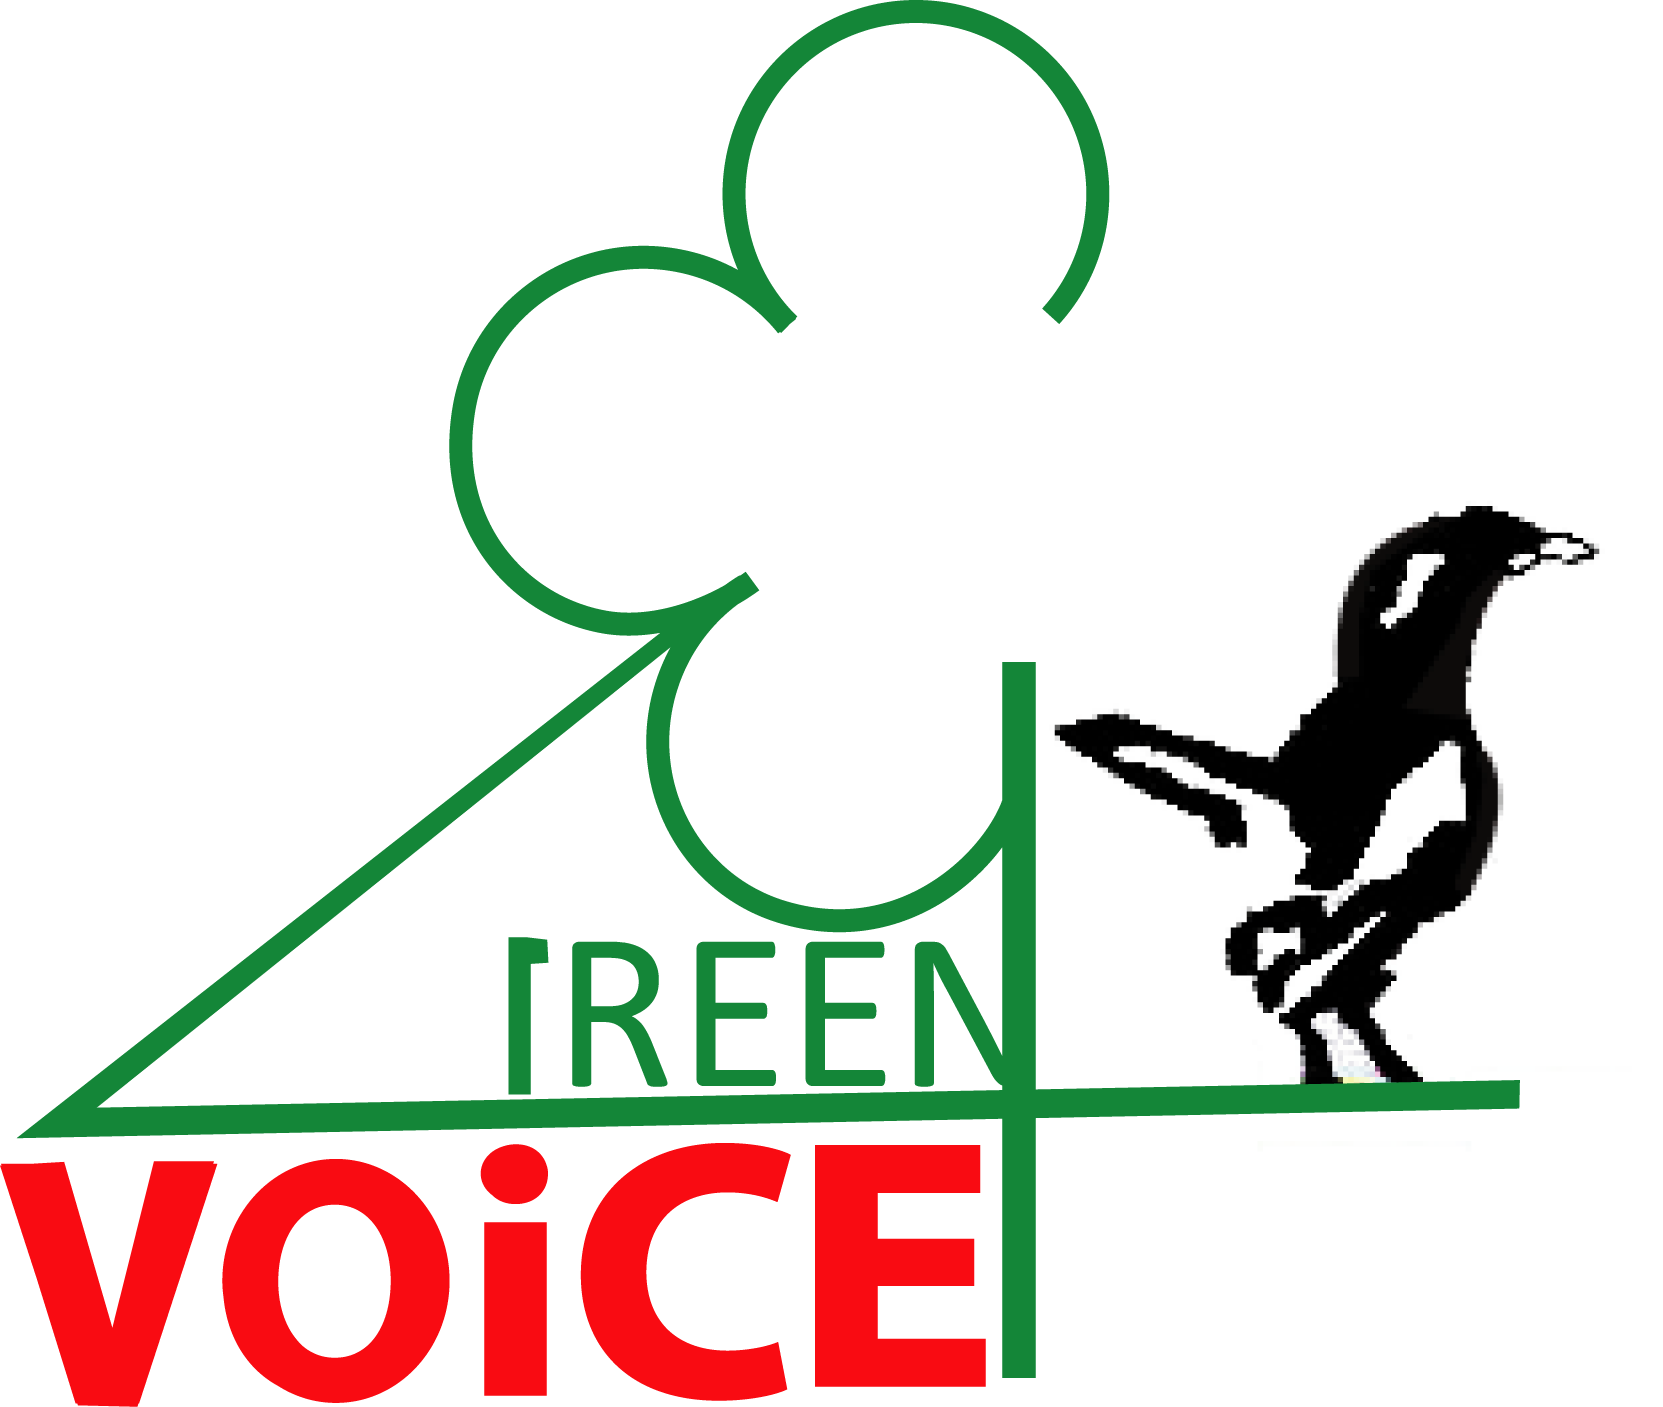 Green-voice-logo.png